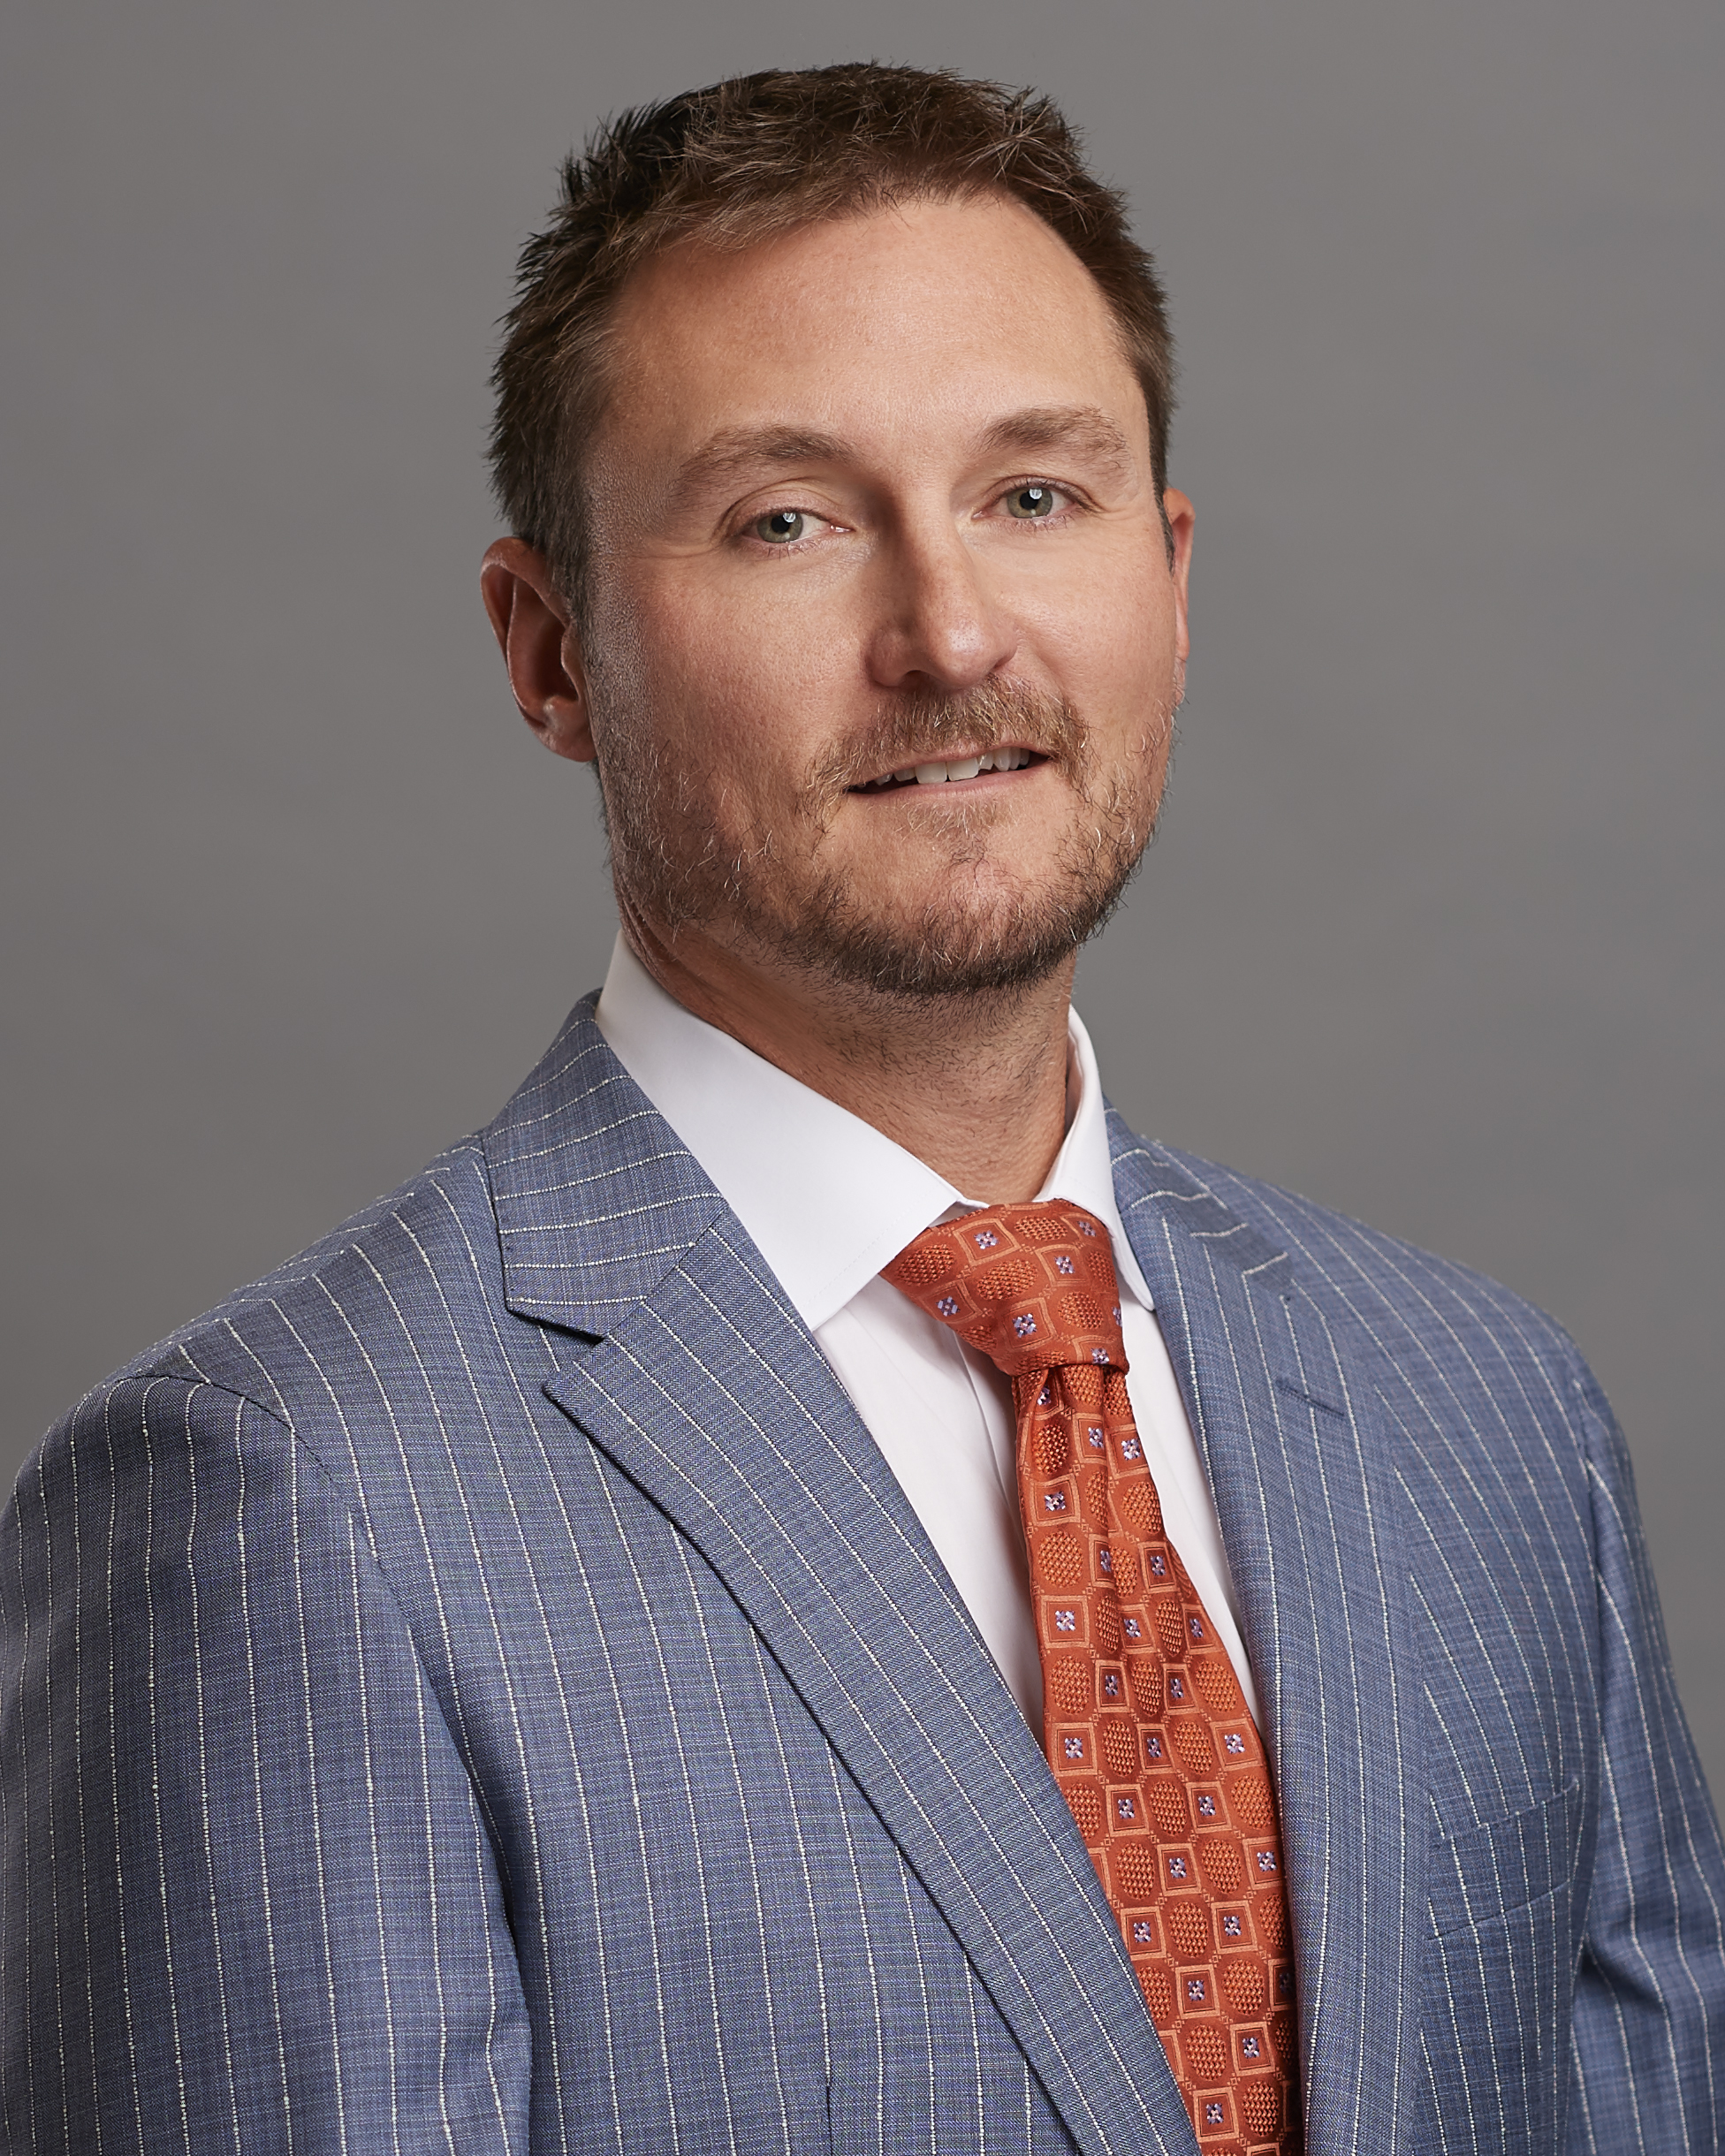 Brandon M. Daniels, ATTORNEY AT LAW, Daniels & Hannan, P.A. Sarasota